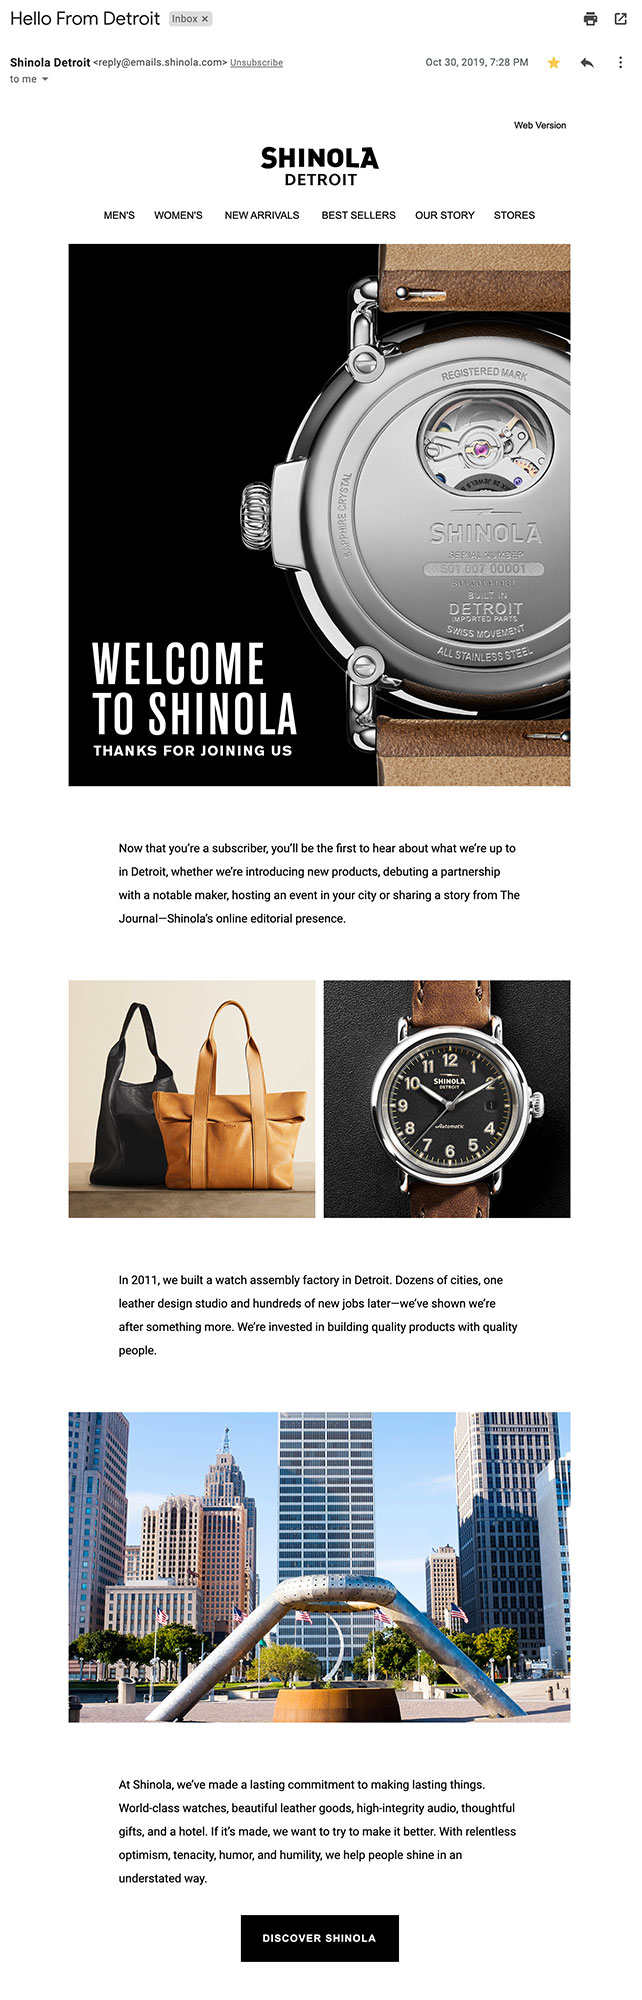 Shinola's welcome email introducing the brand.